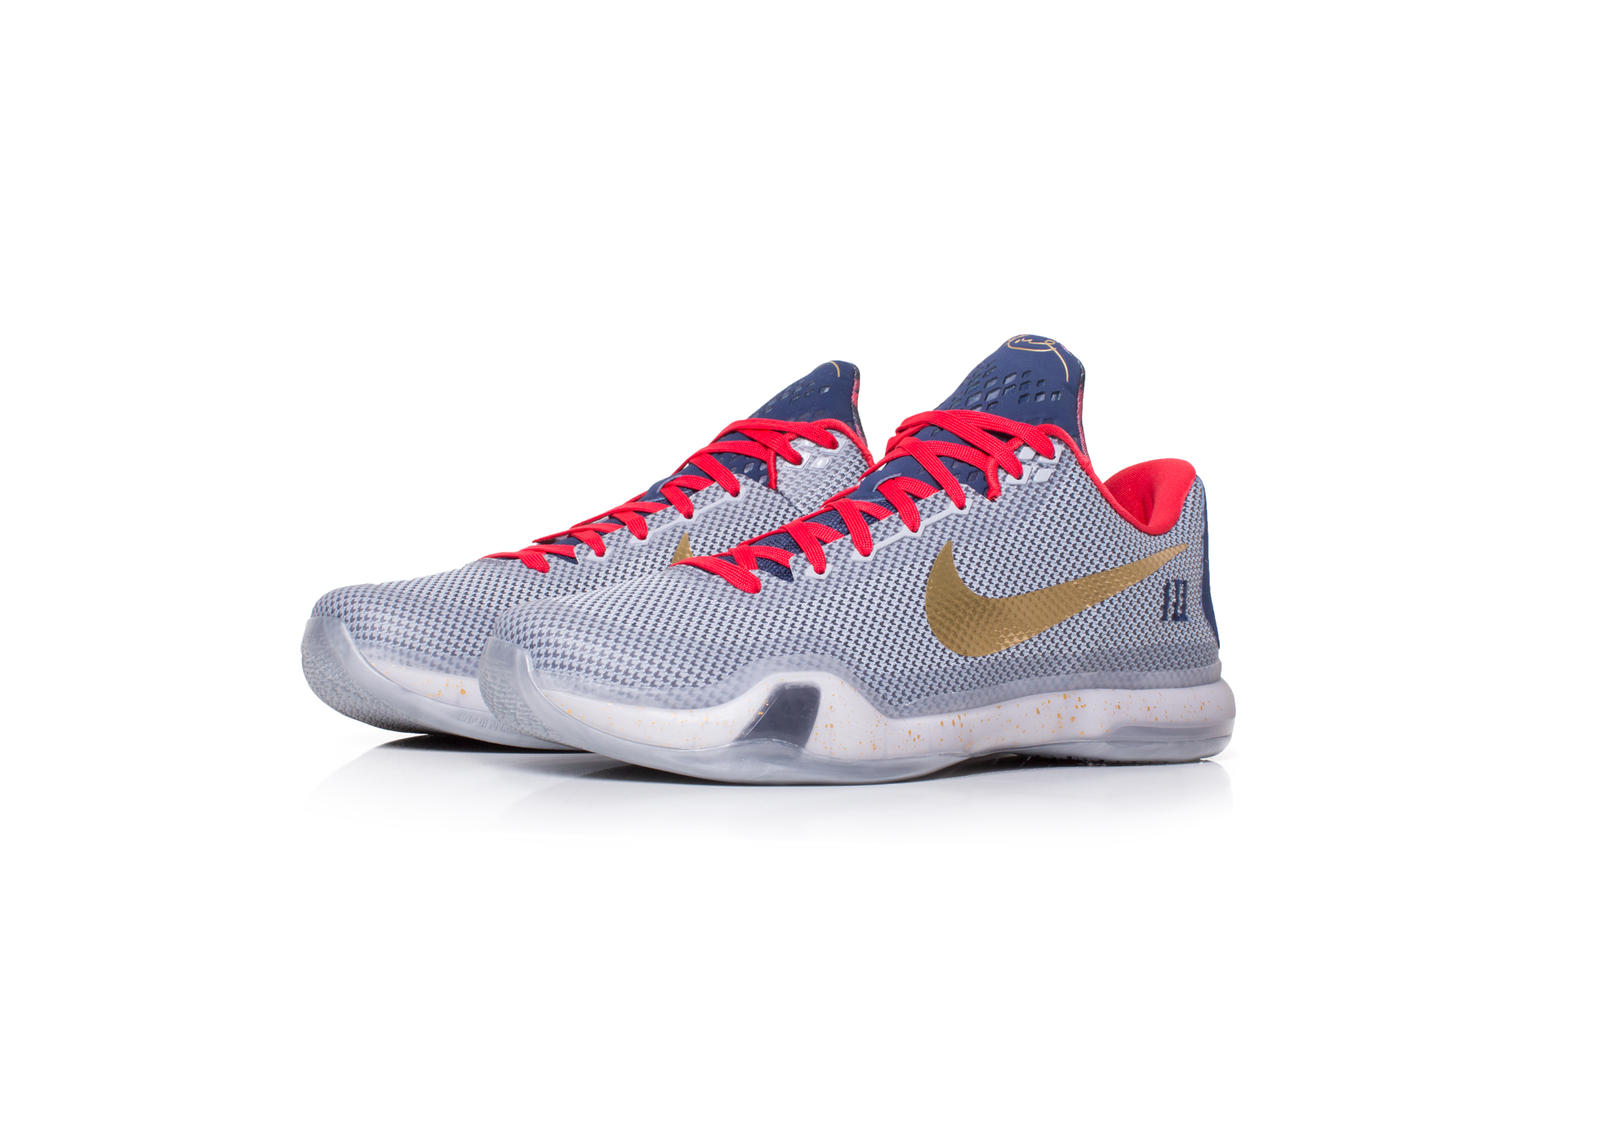 Kobe x uconn 1 rectangle 1600